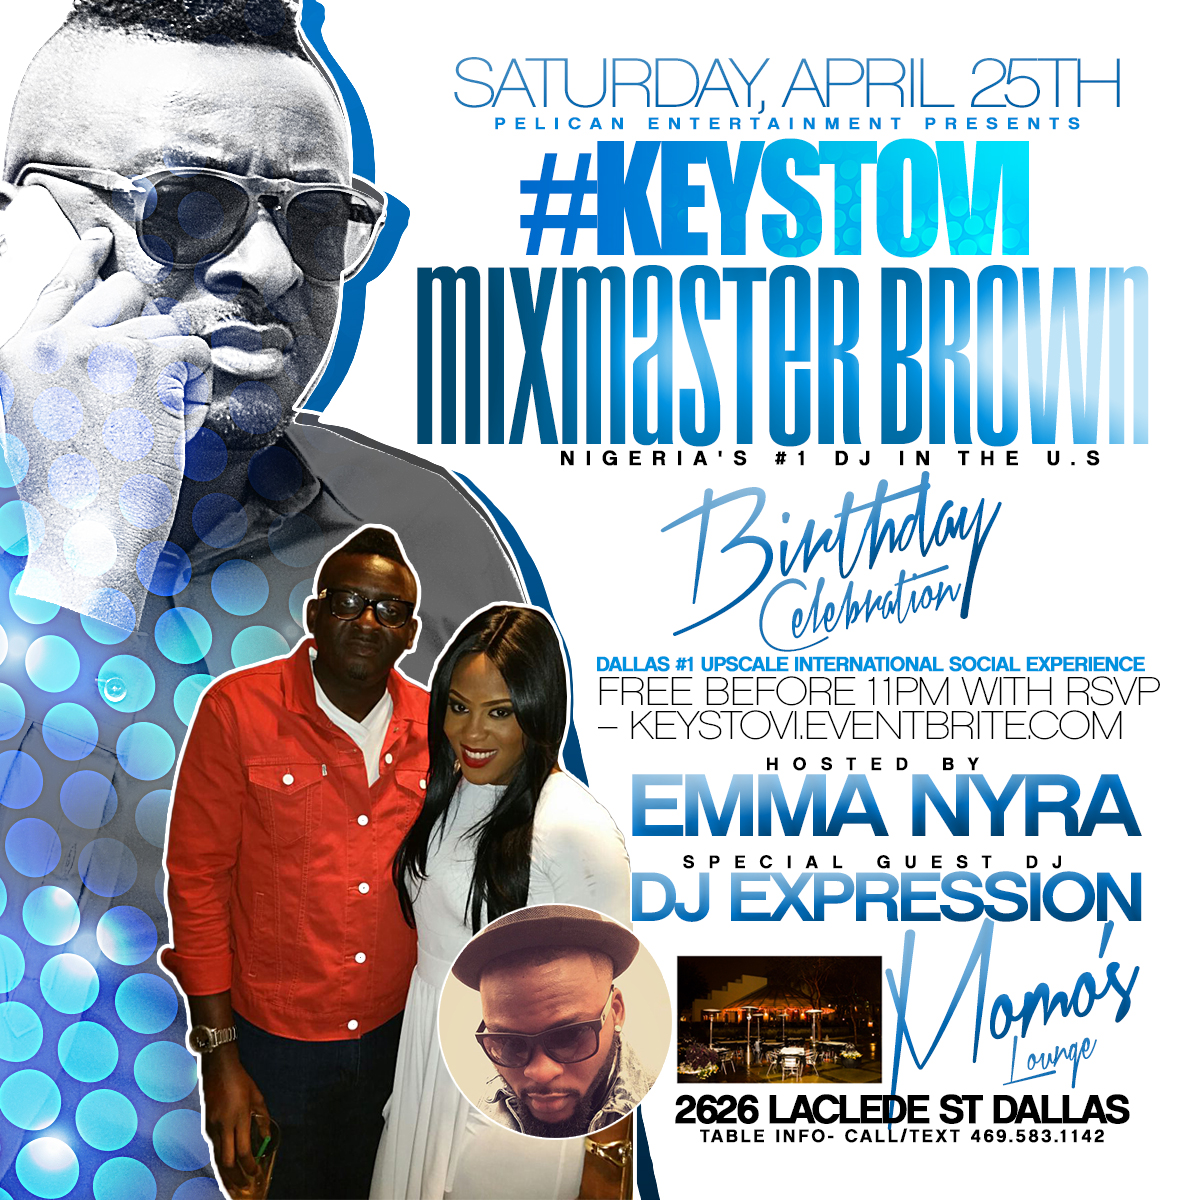 Dj Mixmasterbrown's Birthday Celebration